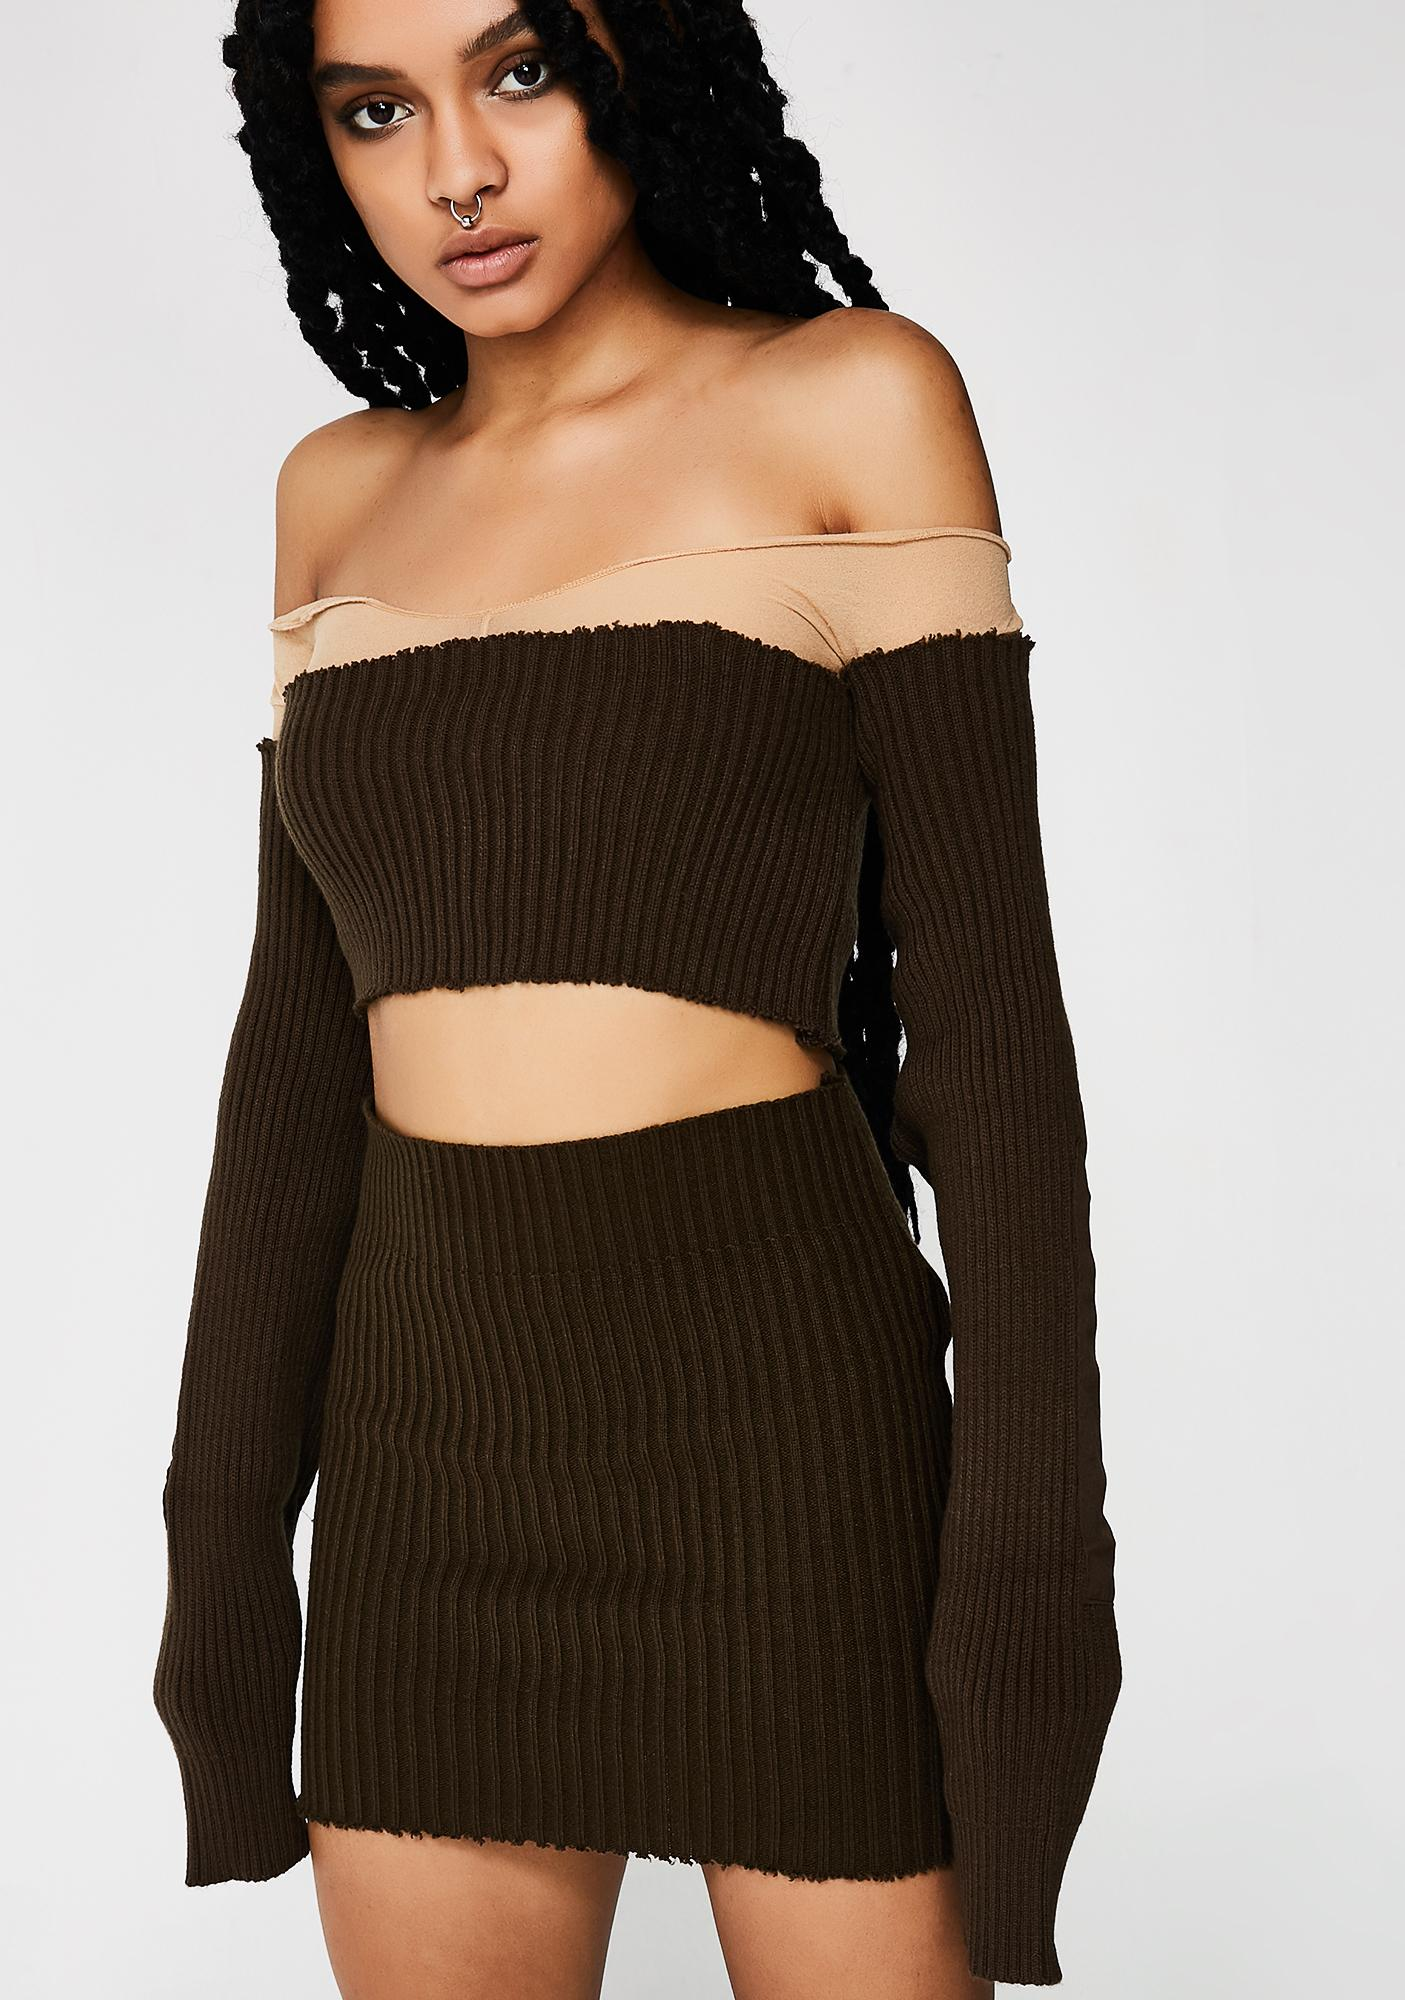 79c98be19eb0b5 ... Plugged NYC Shoulderless Crop Top ...